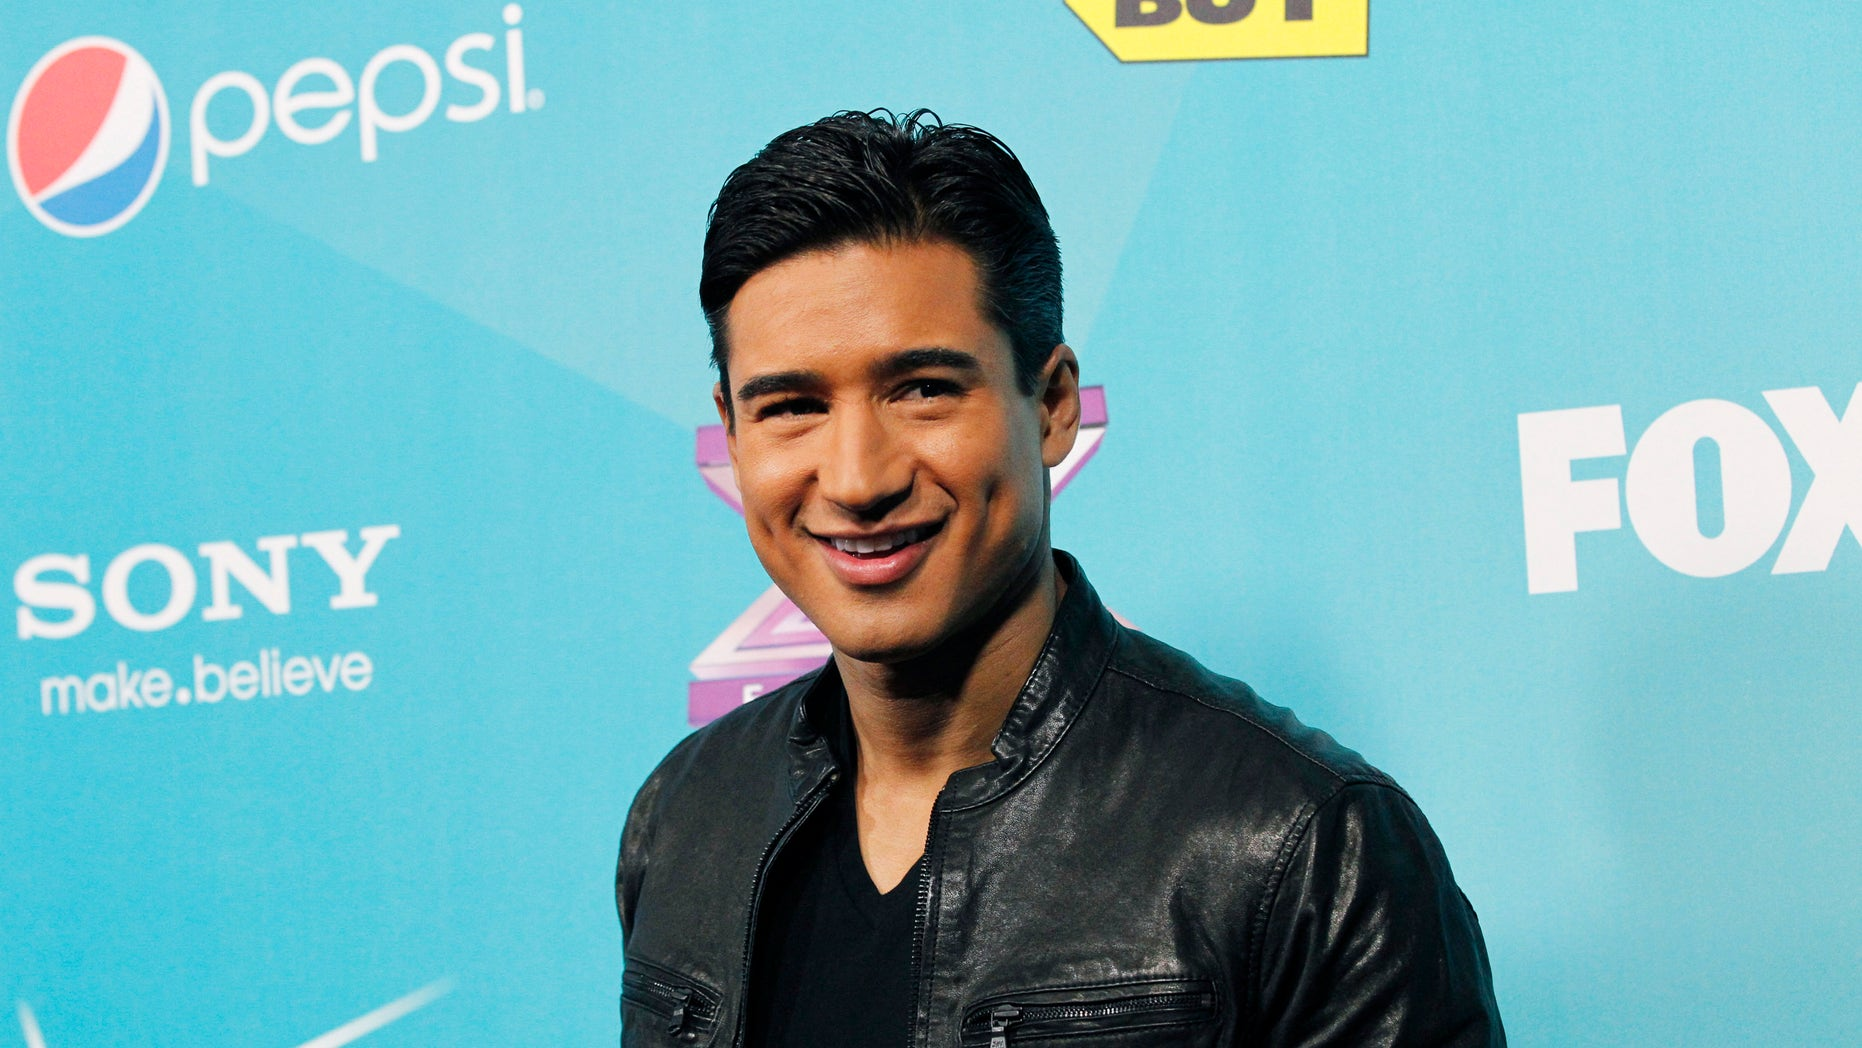 """Host Mario Lopez poses at the party for the finalists of television series """"The X Factor"""" in Los Angeles, California November 5, 2012.  REUTERS/Mario Anzuoni (UNITED STATES - Tags: ENTERTAINMENT) - RTR3A1PH"""